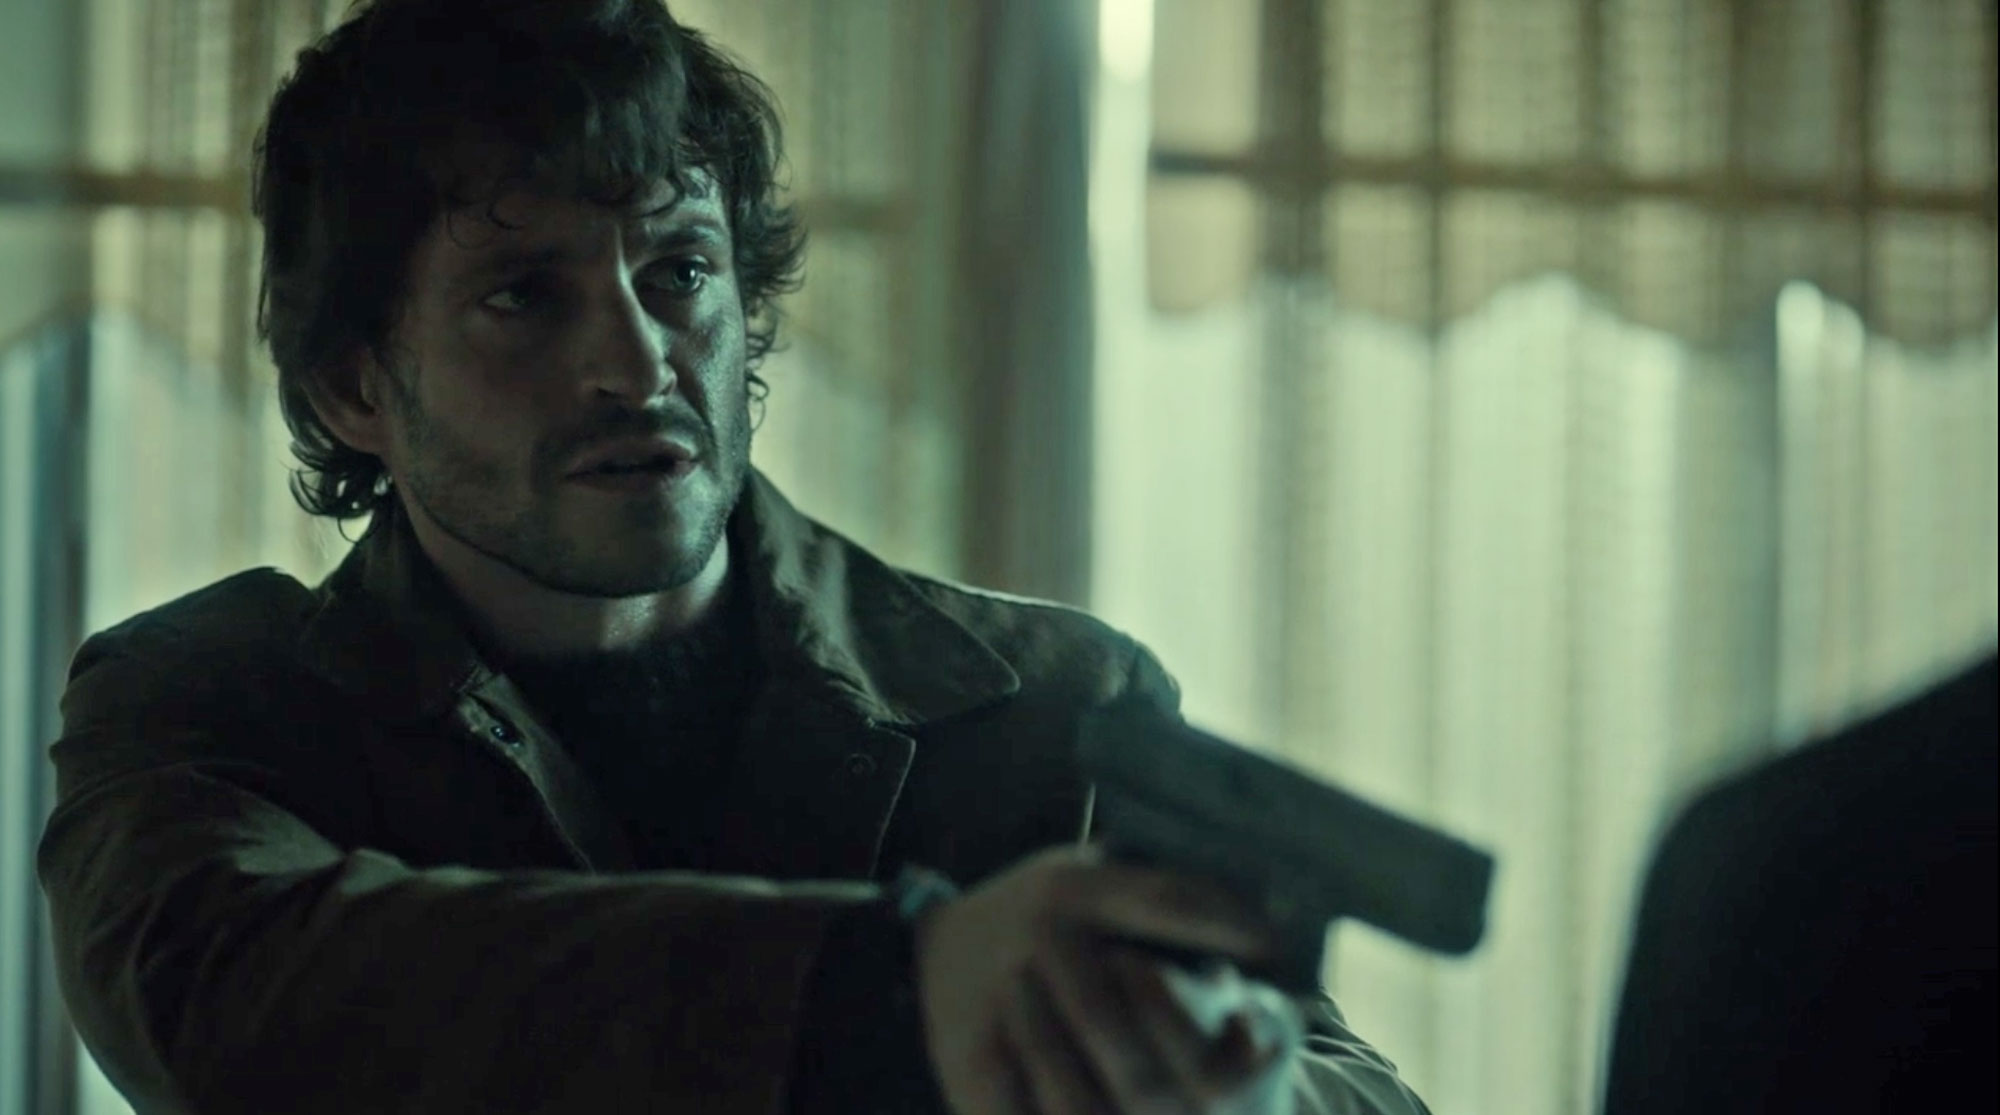 Waxed Cotton Jacket worn by Will Graham pointing a gun